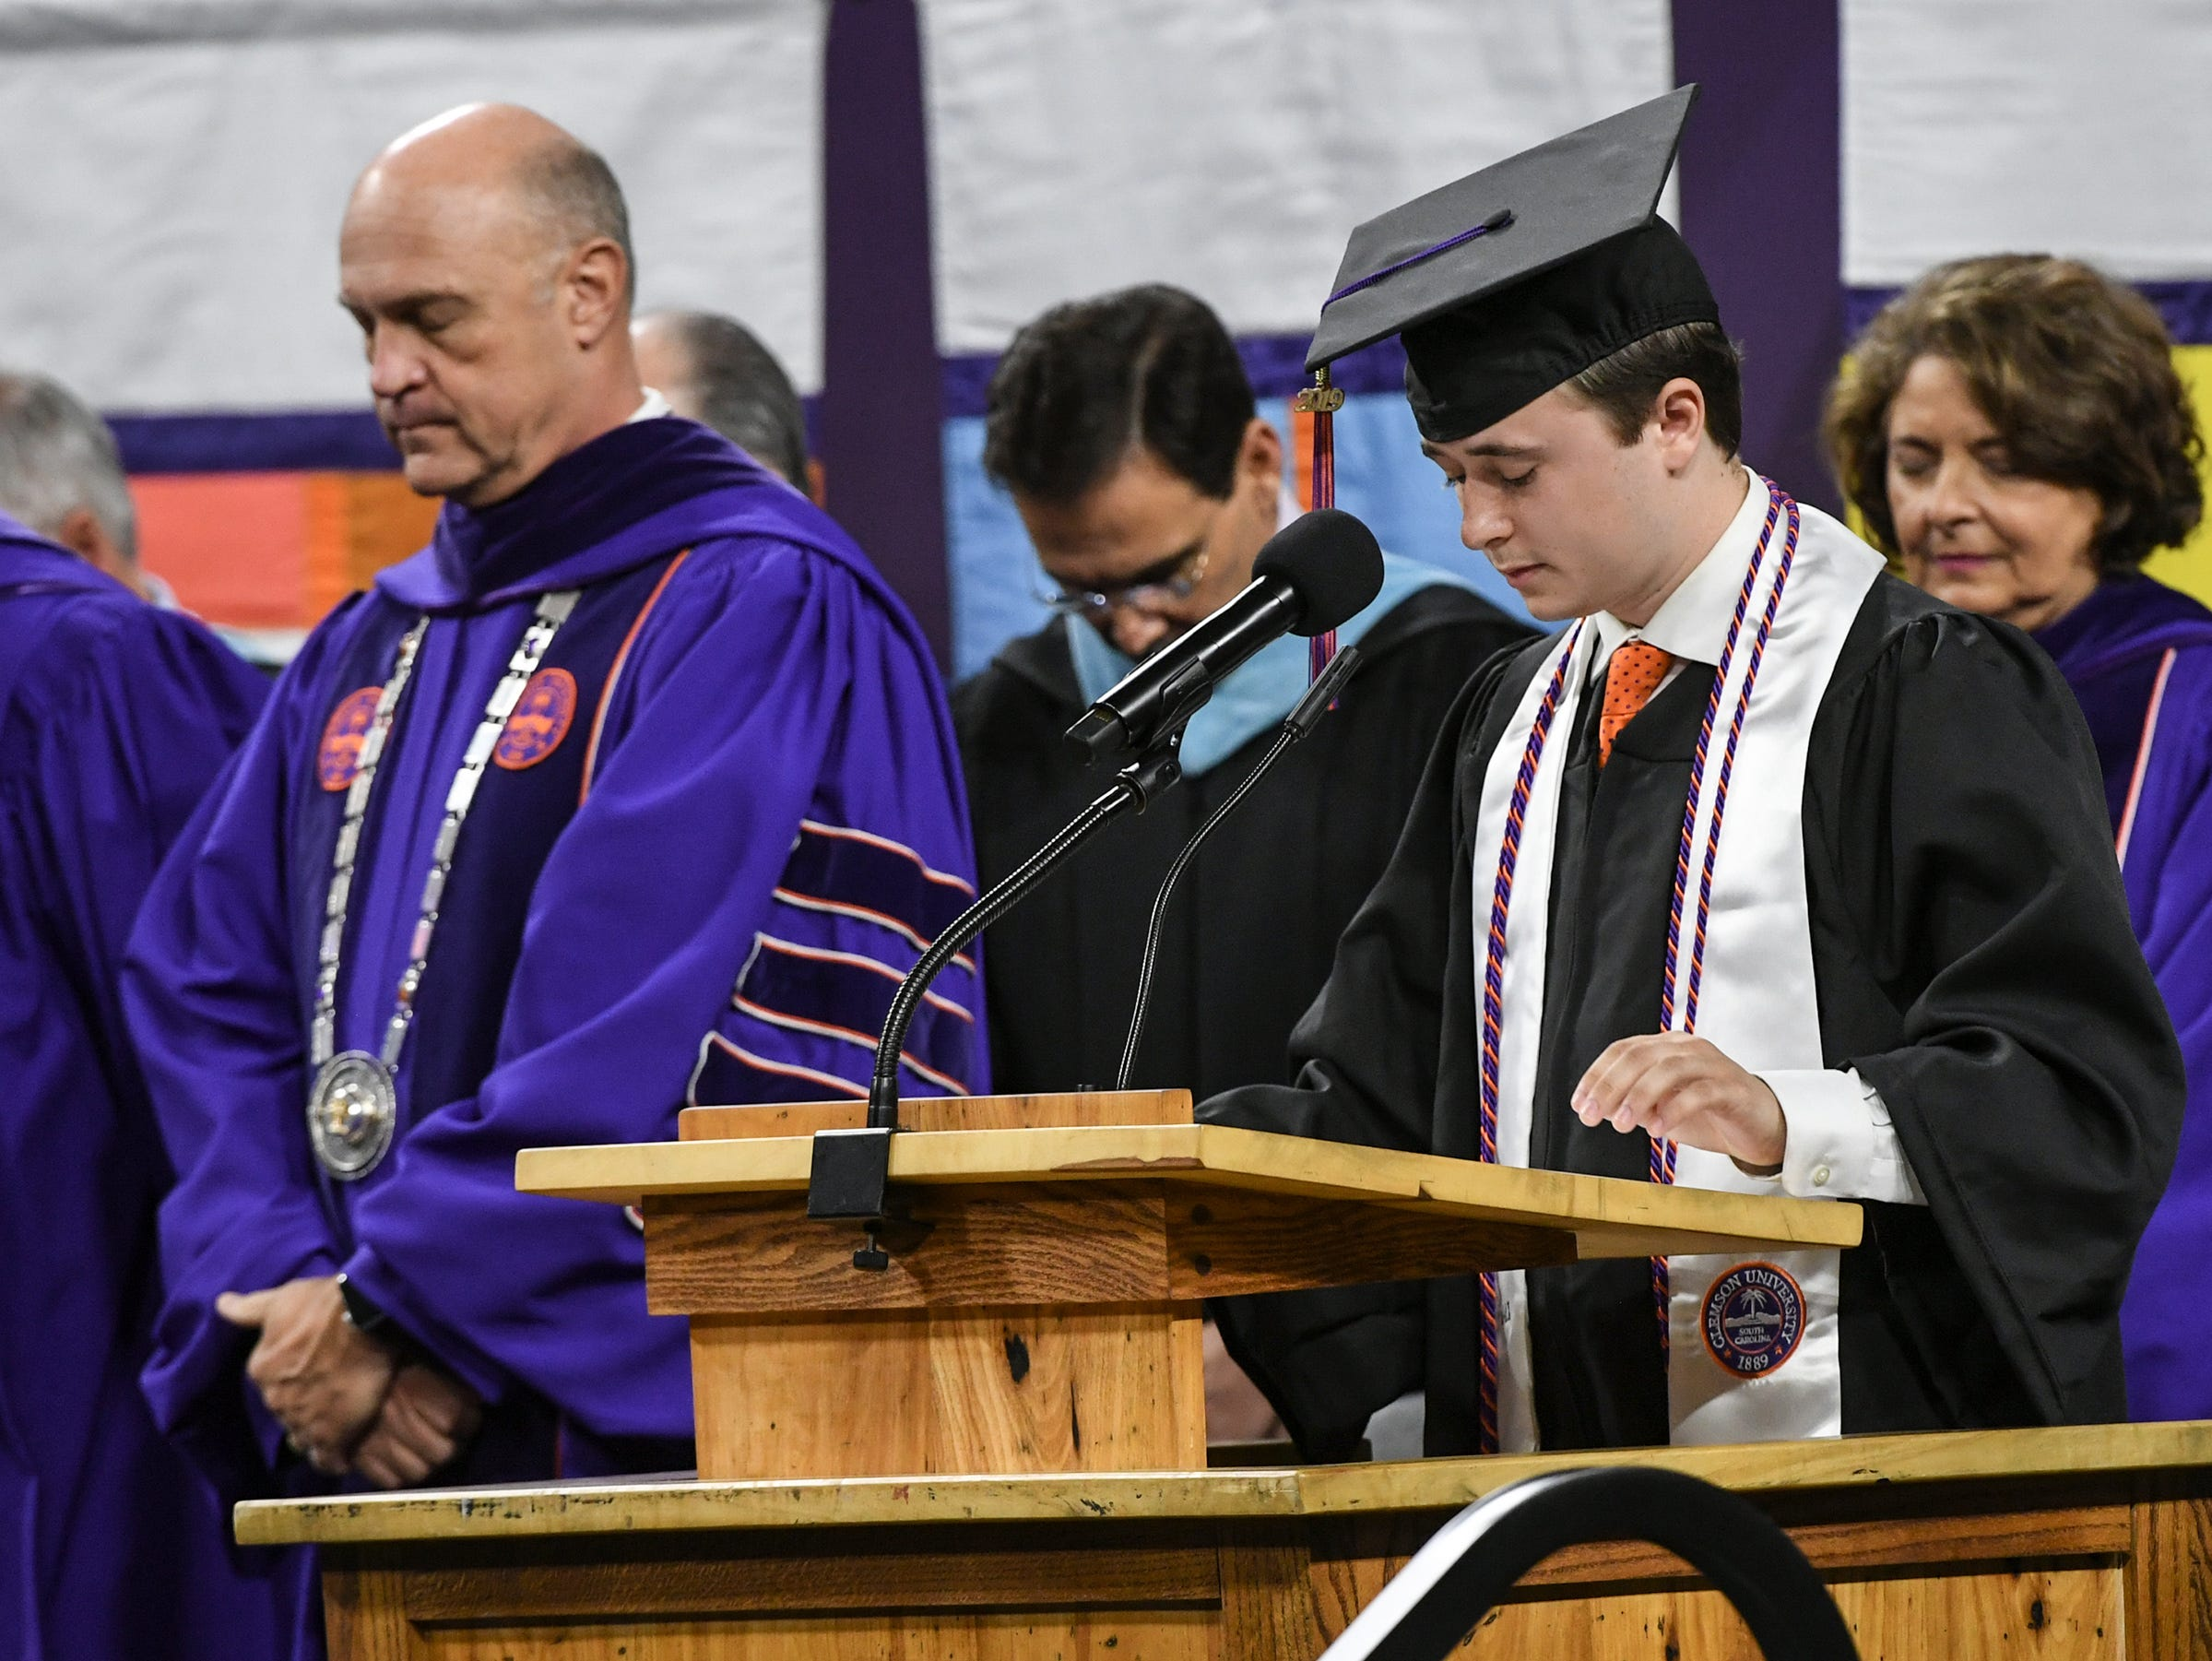 Jacob Crotts gives the invocation near President Jim Clements during Clemson University commencement ceremonies in Littlejohn Coliseum in Clemson Friday, May 10, 2019.